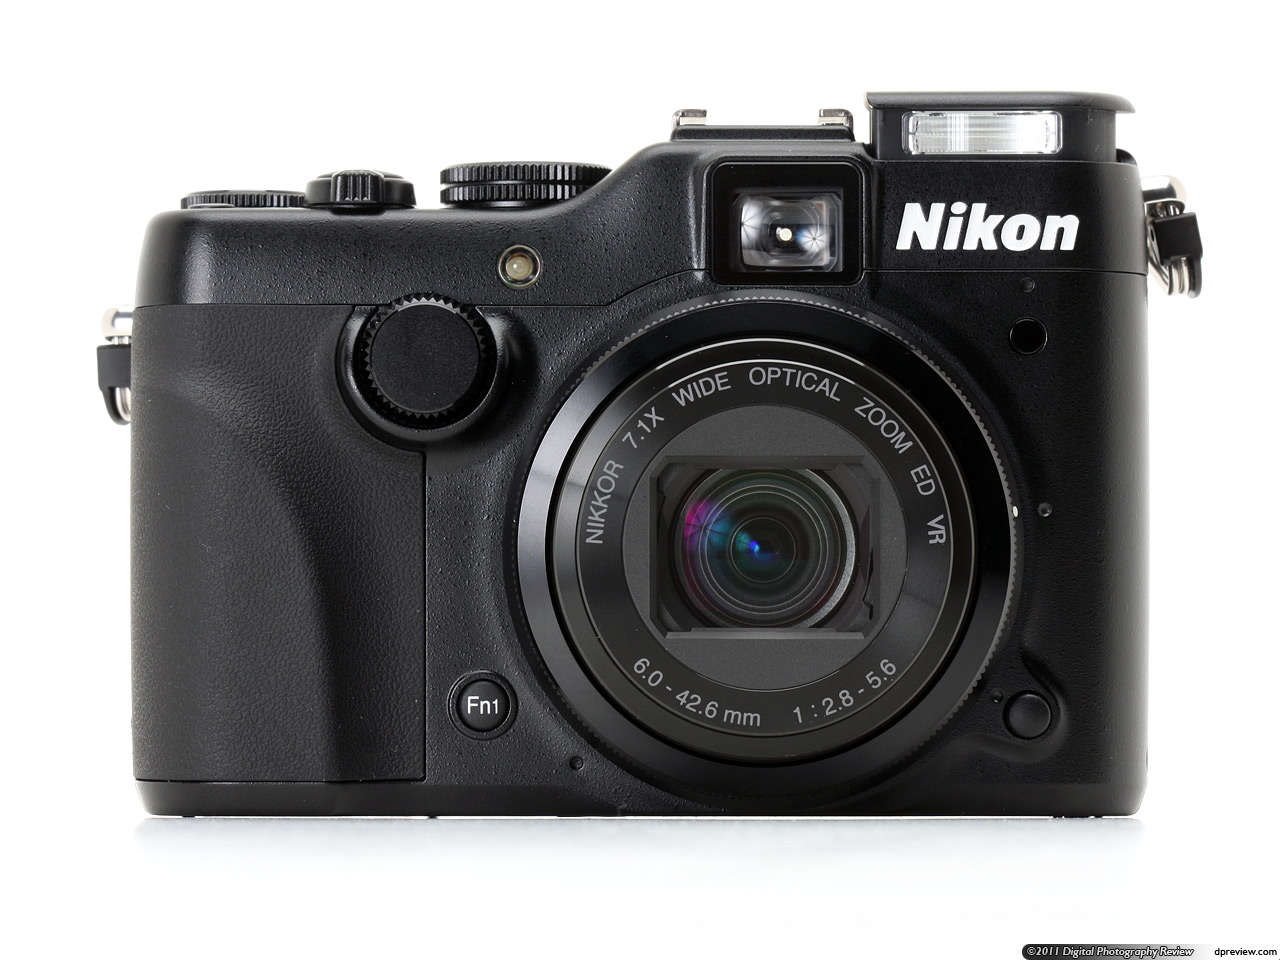 nikon coolpix p7100 review digital photography review. Black Bedroom Furniture Sets. Home Design Ideas